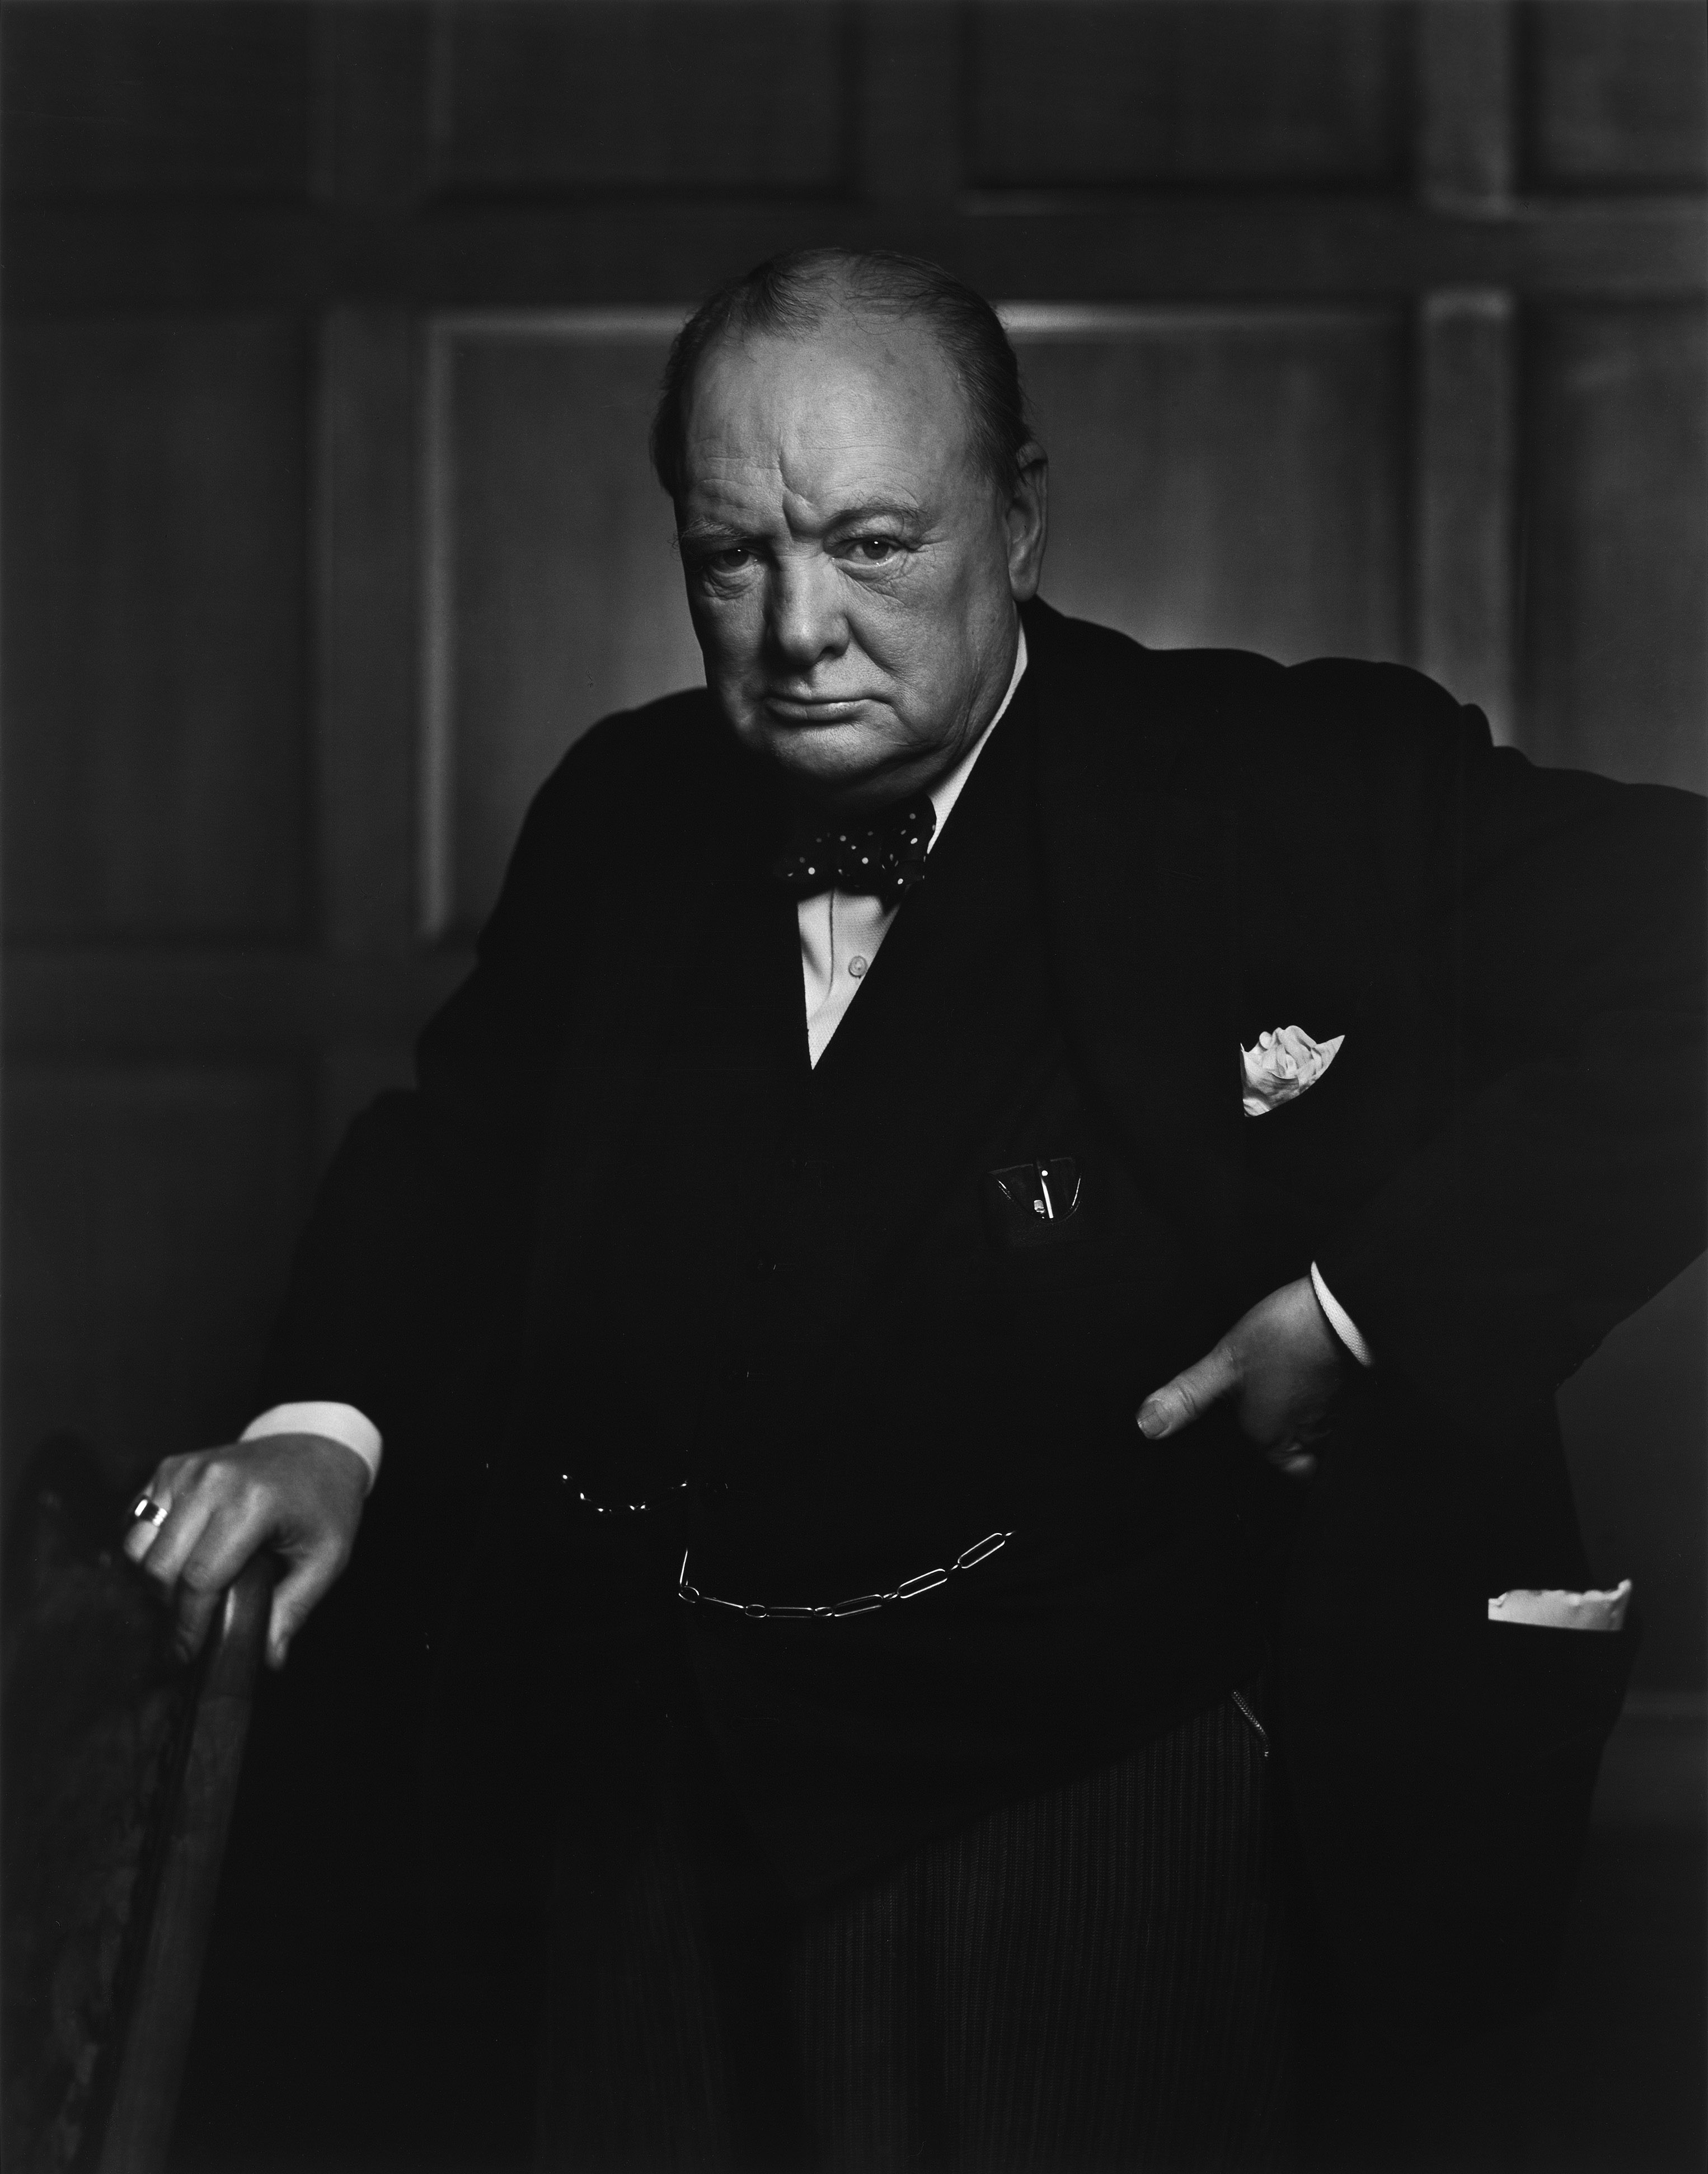 Winston Churchill Painting By Sutherland : winston, churchill, painting, sutherland, Roaring, Wikipedia